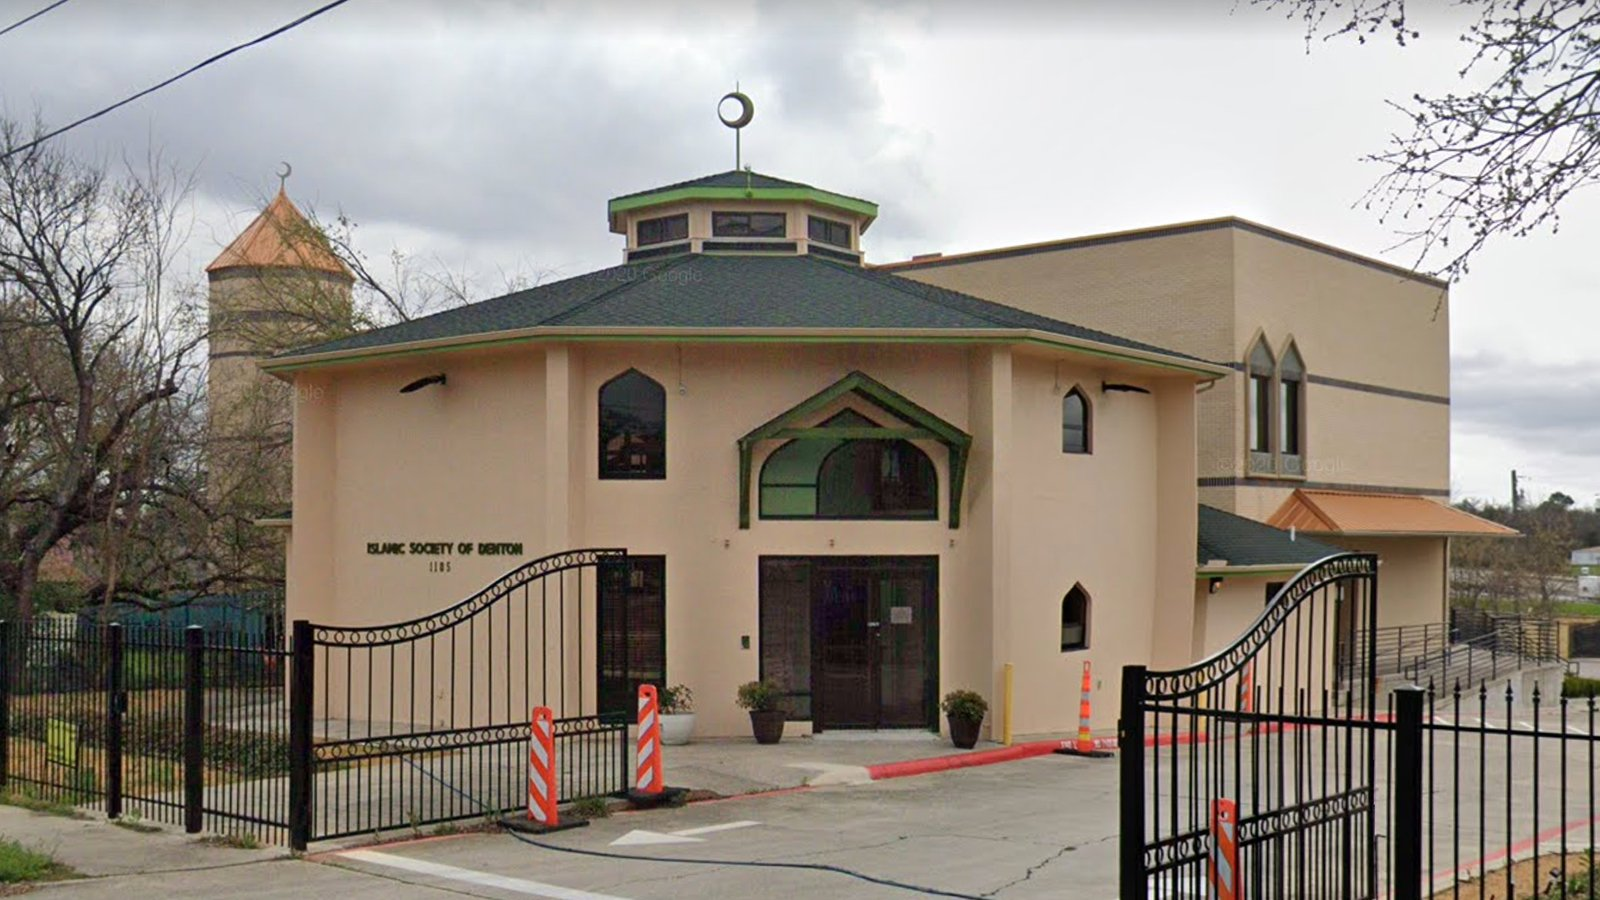 The Islamic Society of Denton recently experienced major water damage due to severe winter weather in Denton, Texas. Photo courtesy of Google Maps